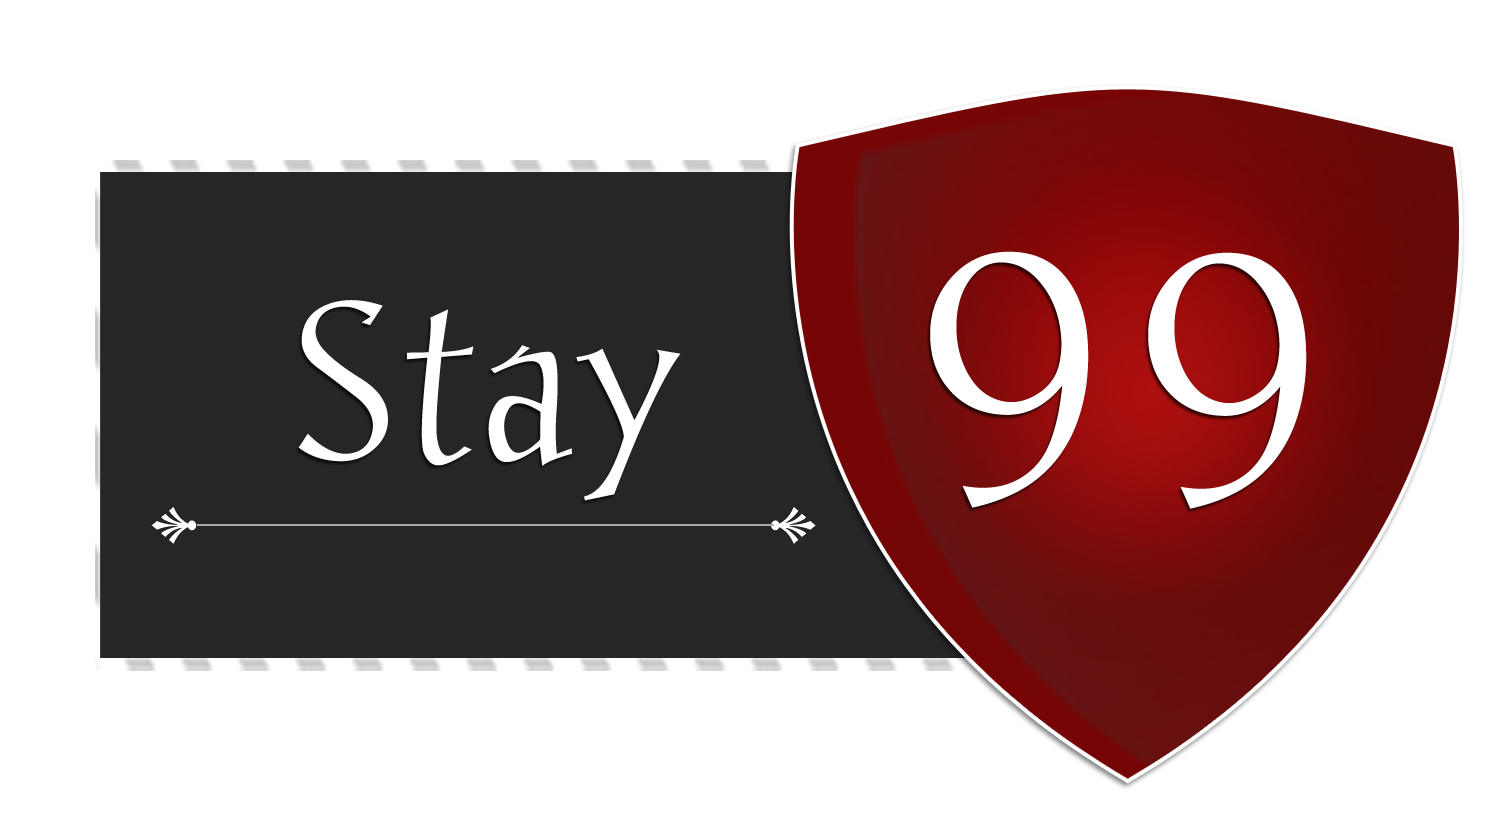 Stay99